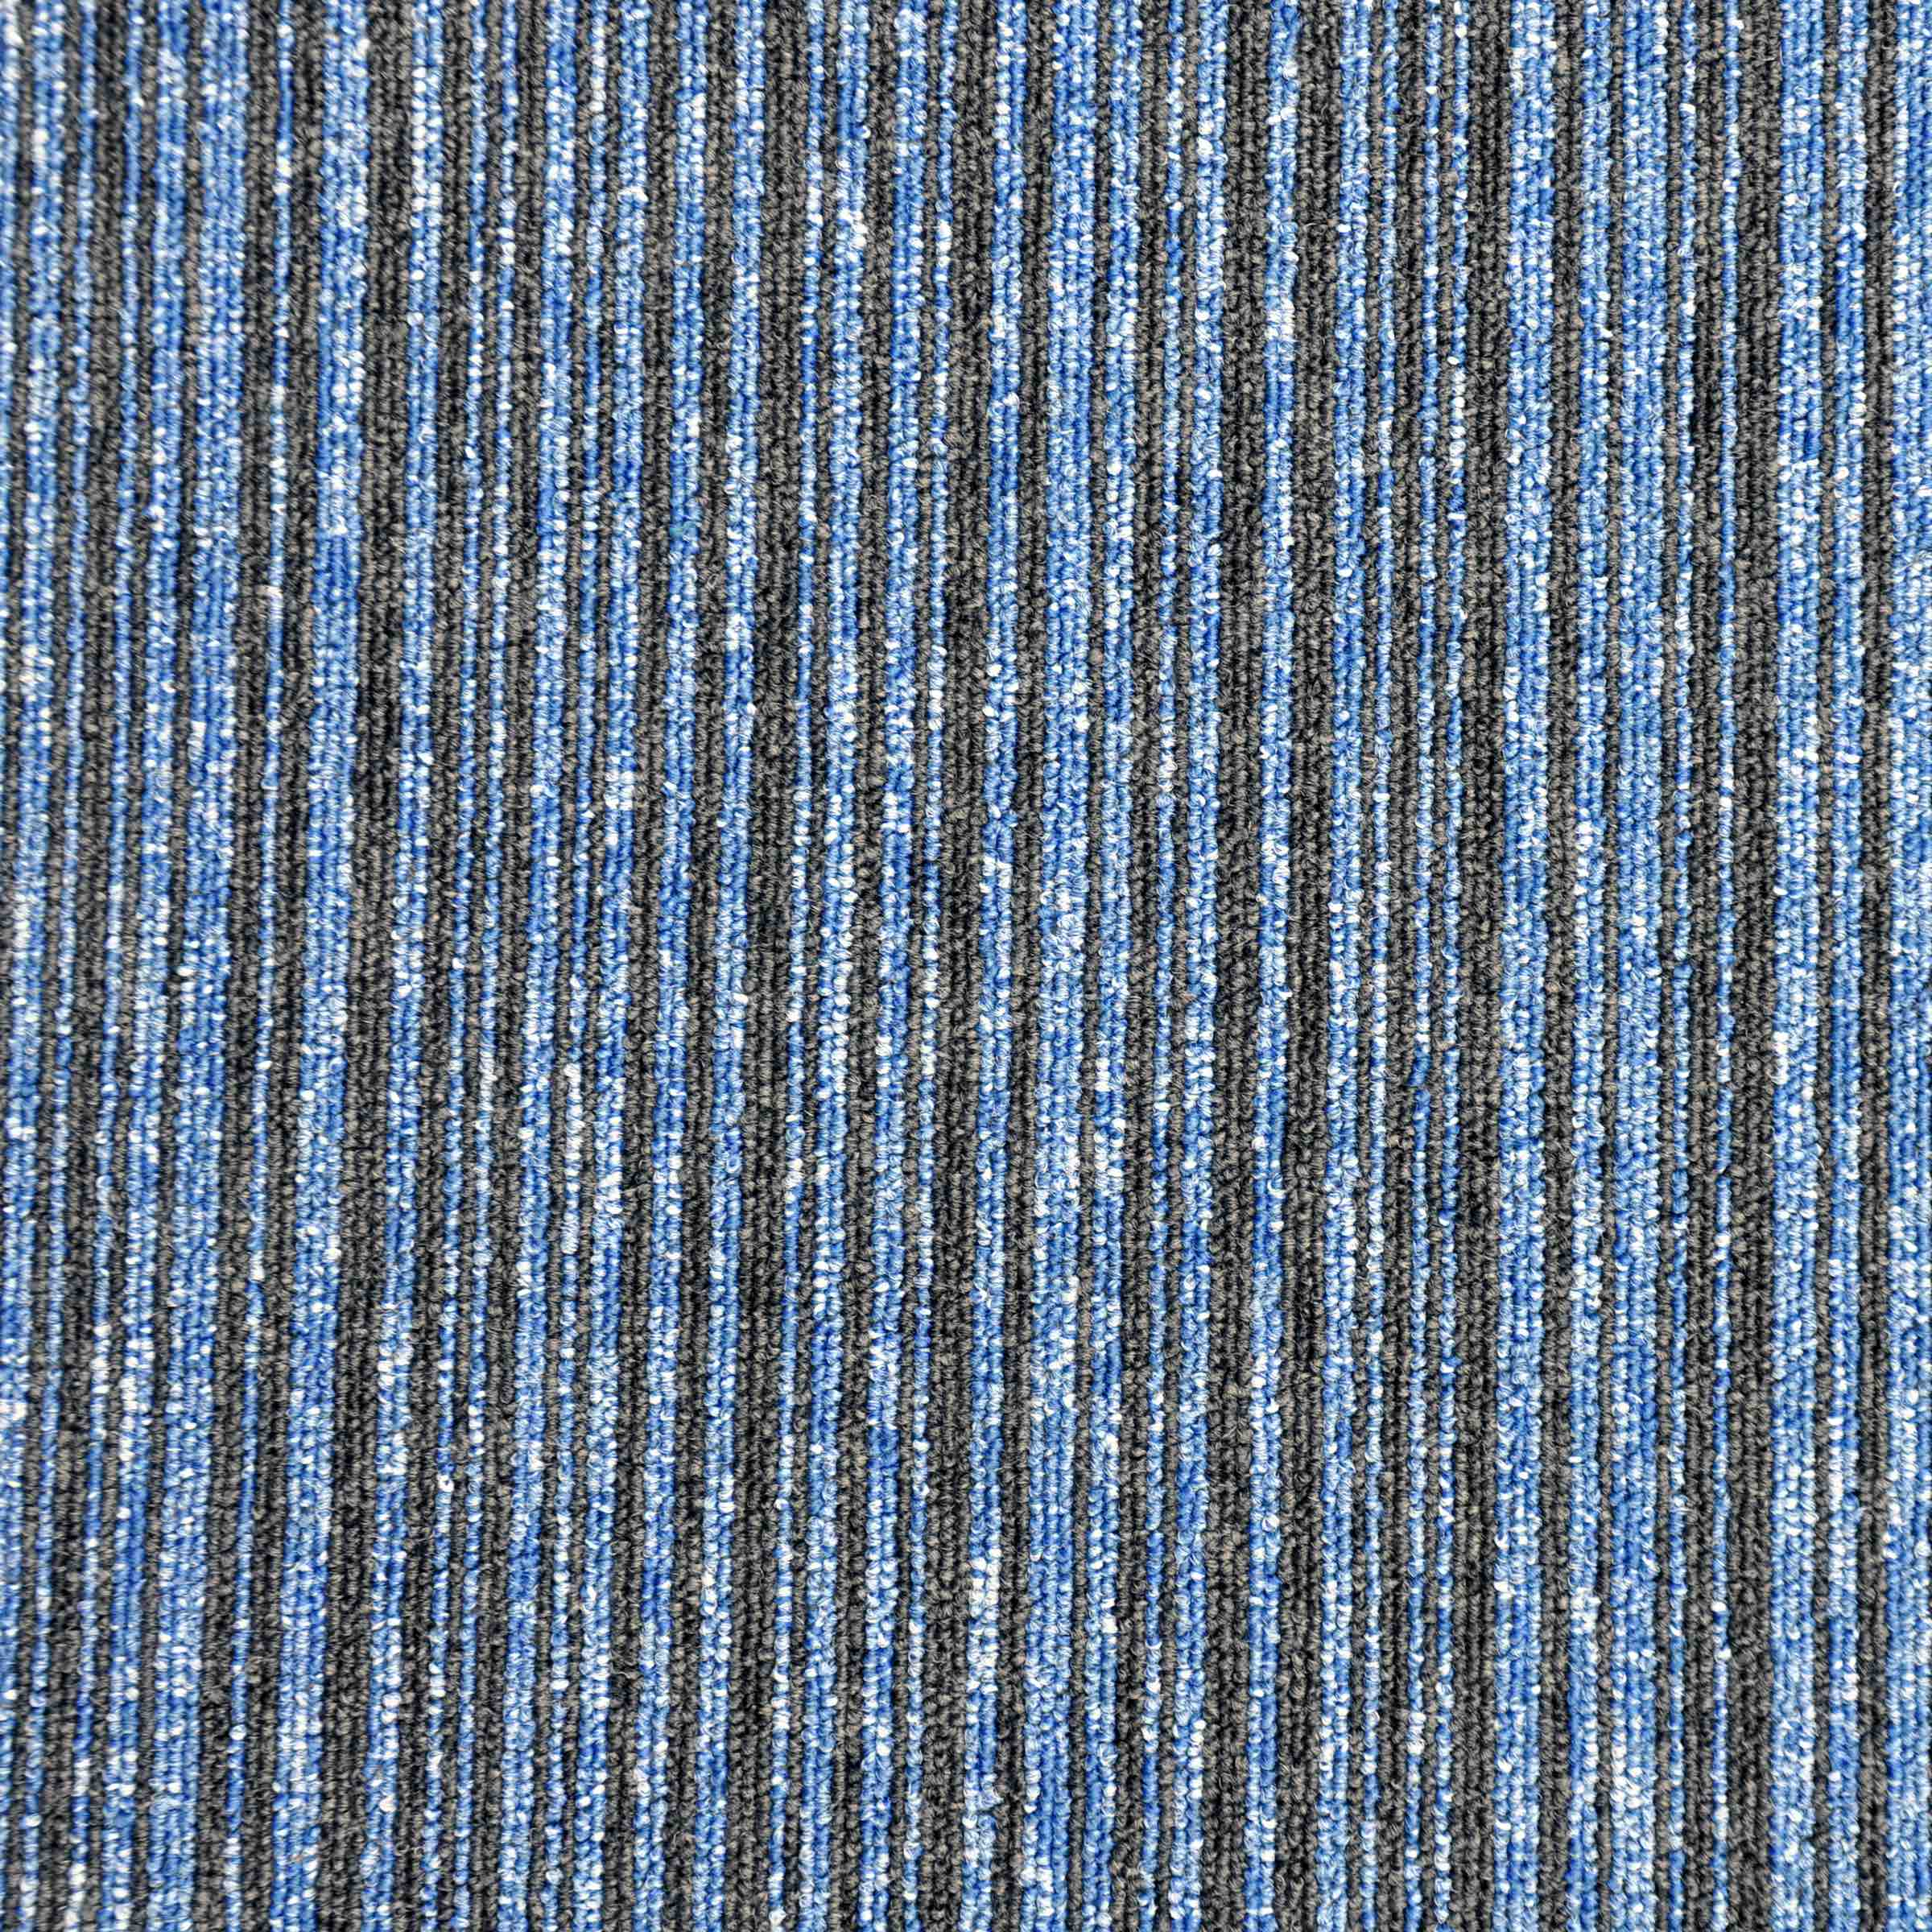 Vital | 876013 | Paragon Carpet Tiles | Commercial Carpet Tiles